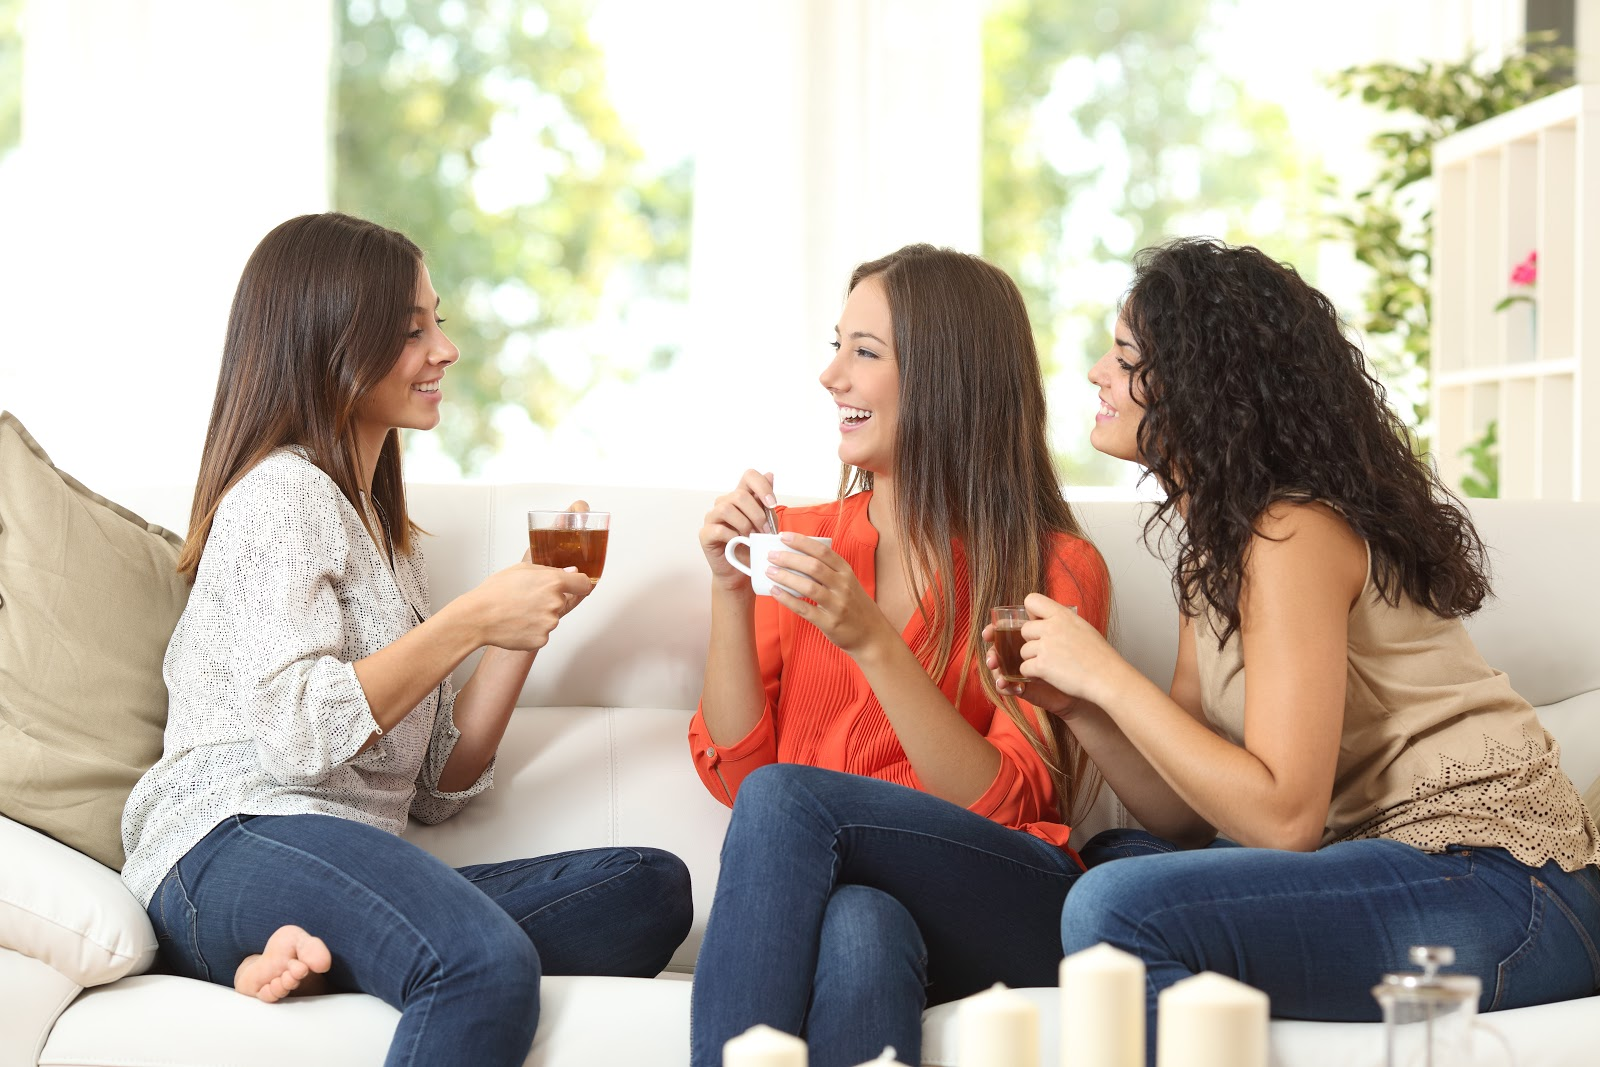 Three co-homeowners sit on a sofa, drinking coffee and chatting.